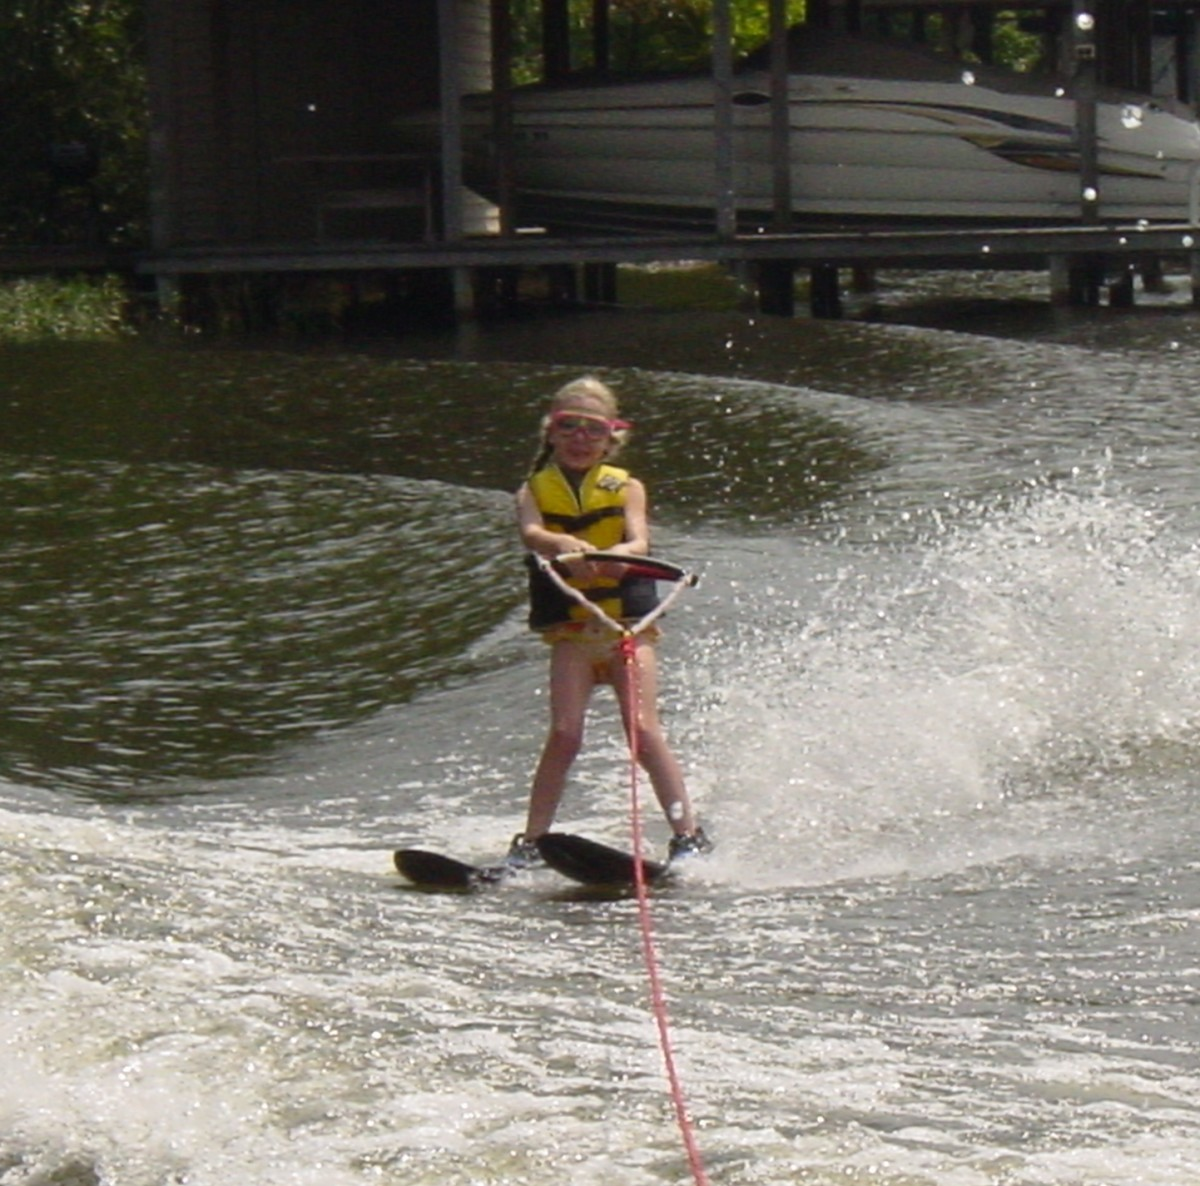 How to Teach a Child to Water Ski